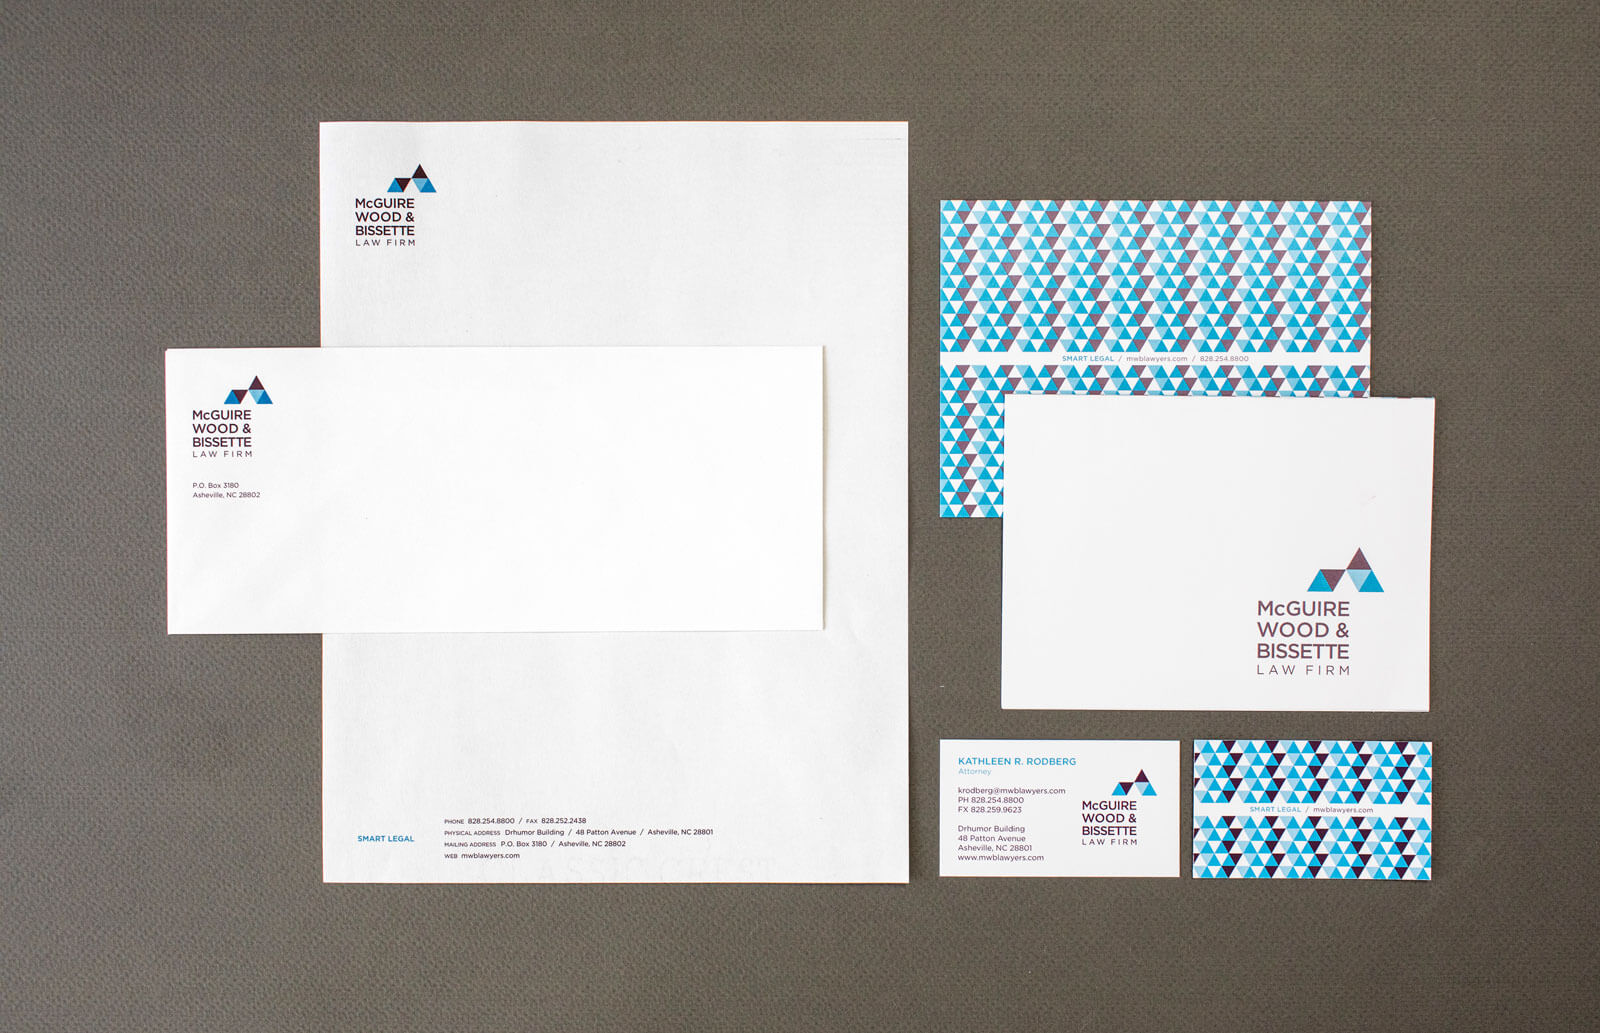 McGuire Wood & Bissette Law Firm stationery set of letterhead, business card, envelope, notecard, arranged on a gray background.